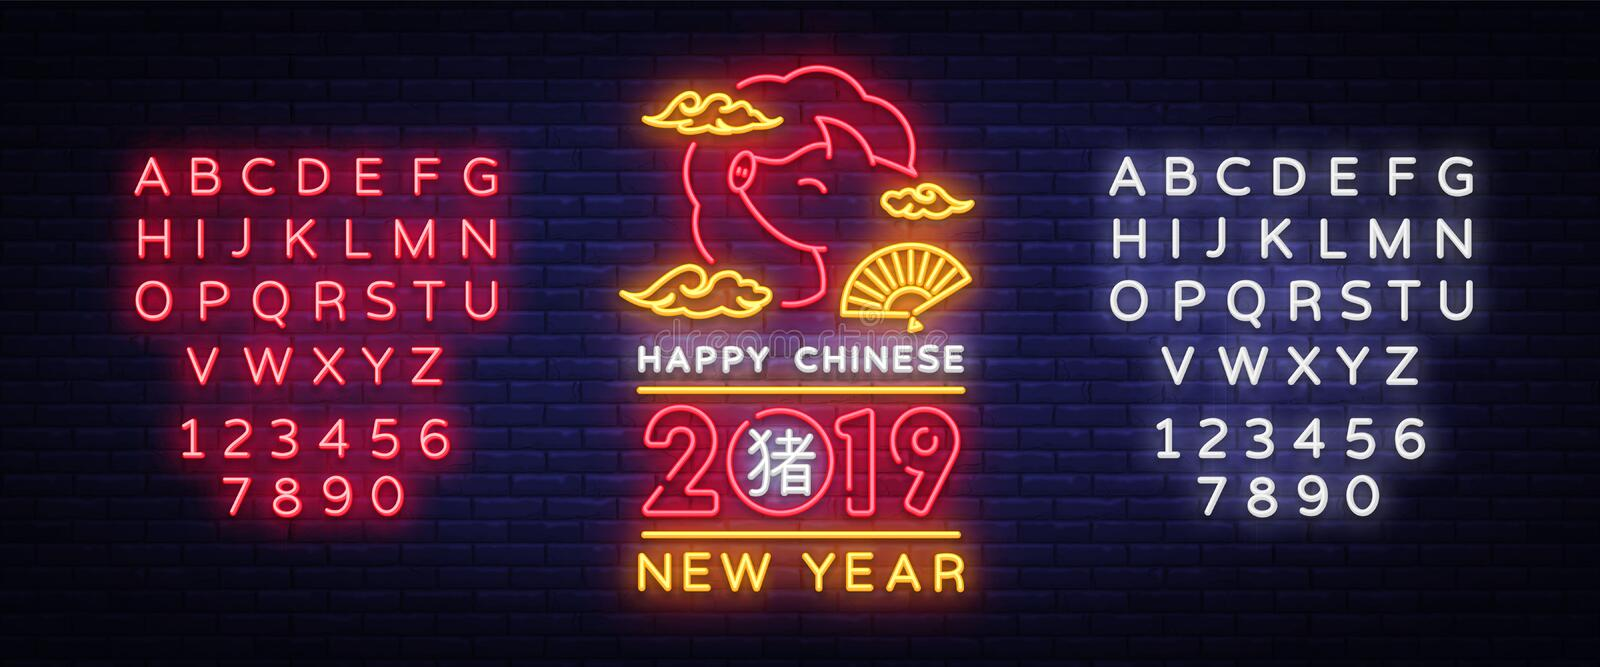 Happy Chinese New Year 2019 year of the pig design card in neon style. Zodiac sign for greetings card, flyers vector illustration